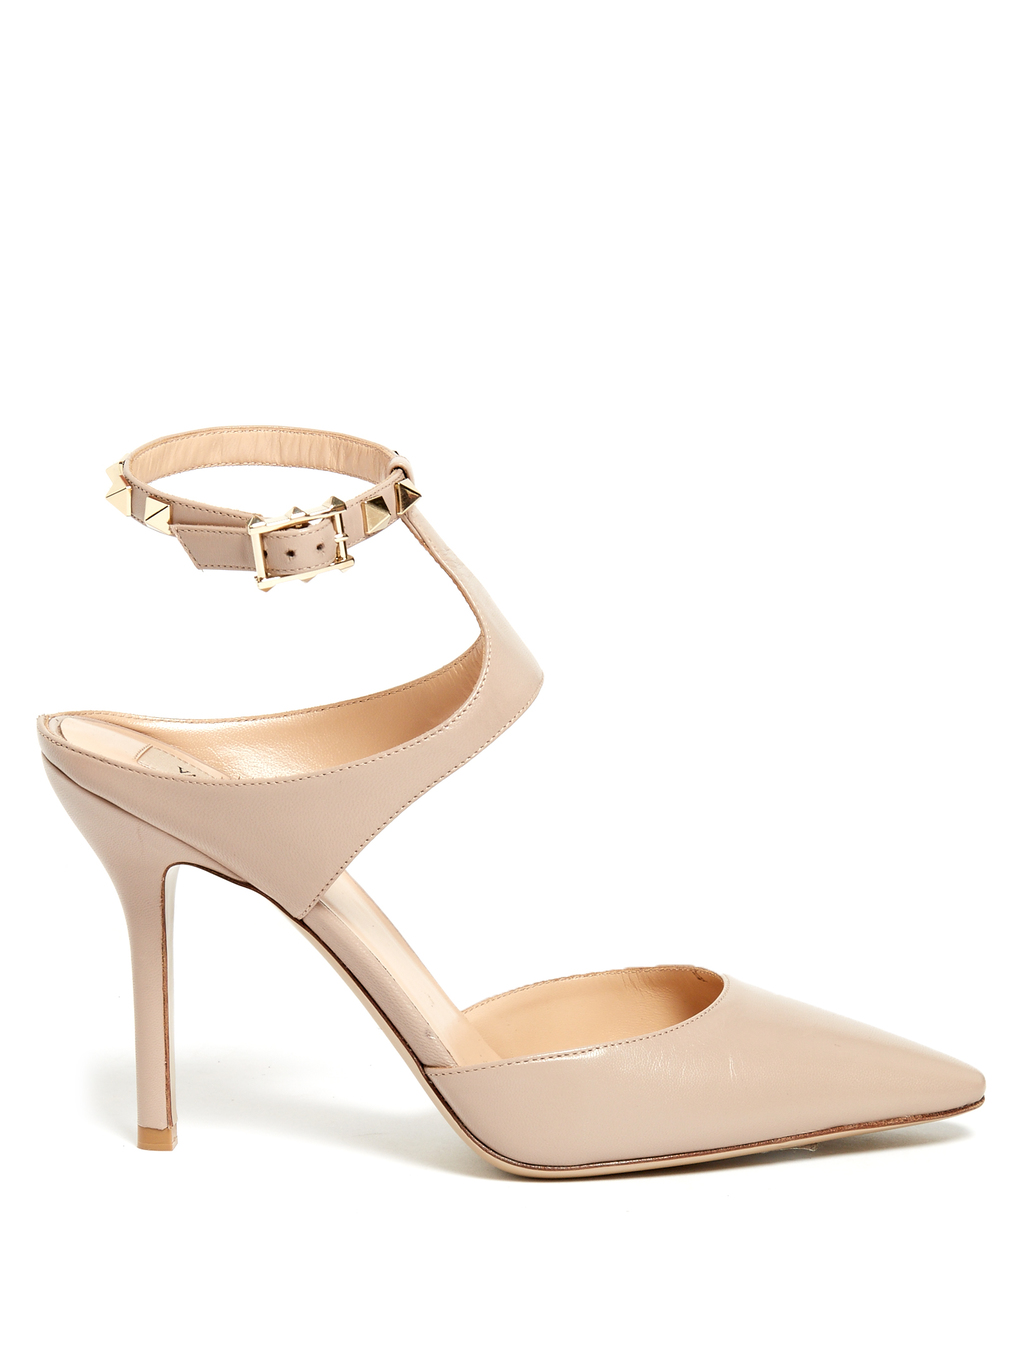 Rockstud Point Toe Leather Pumps - predominant colour: nude; occasions: evening, occasion; material: leather; heel height: high; ankle detail: ankle strap; heel: stiletto; toe: pointed toe; style: courts; finish: patent; pattern: plain; wardrobe: event; season: s/s 2017